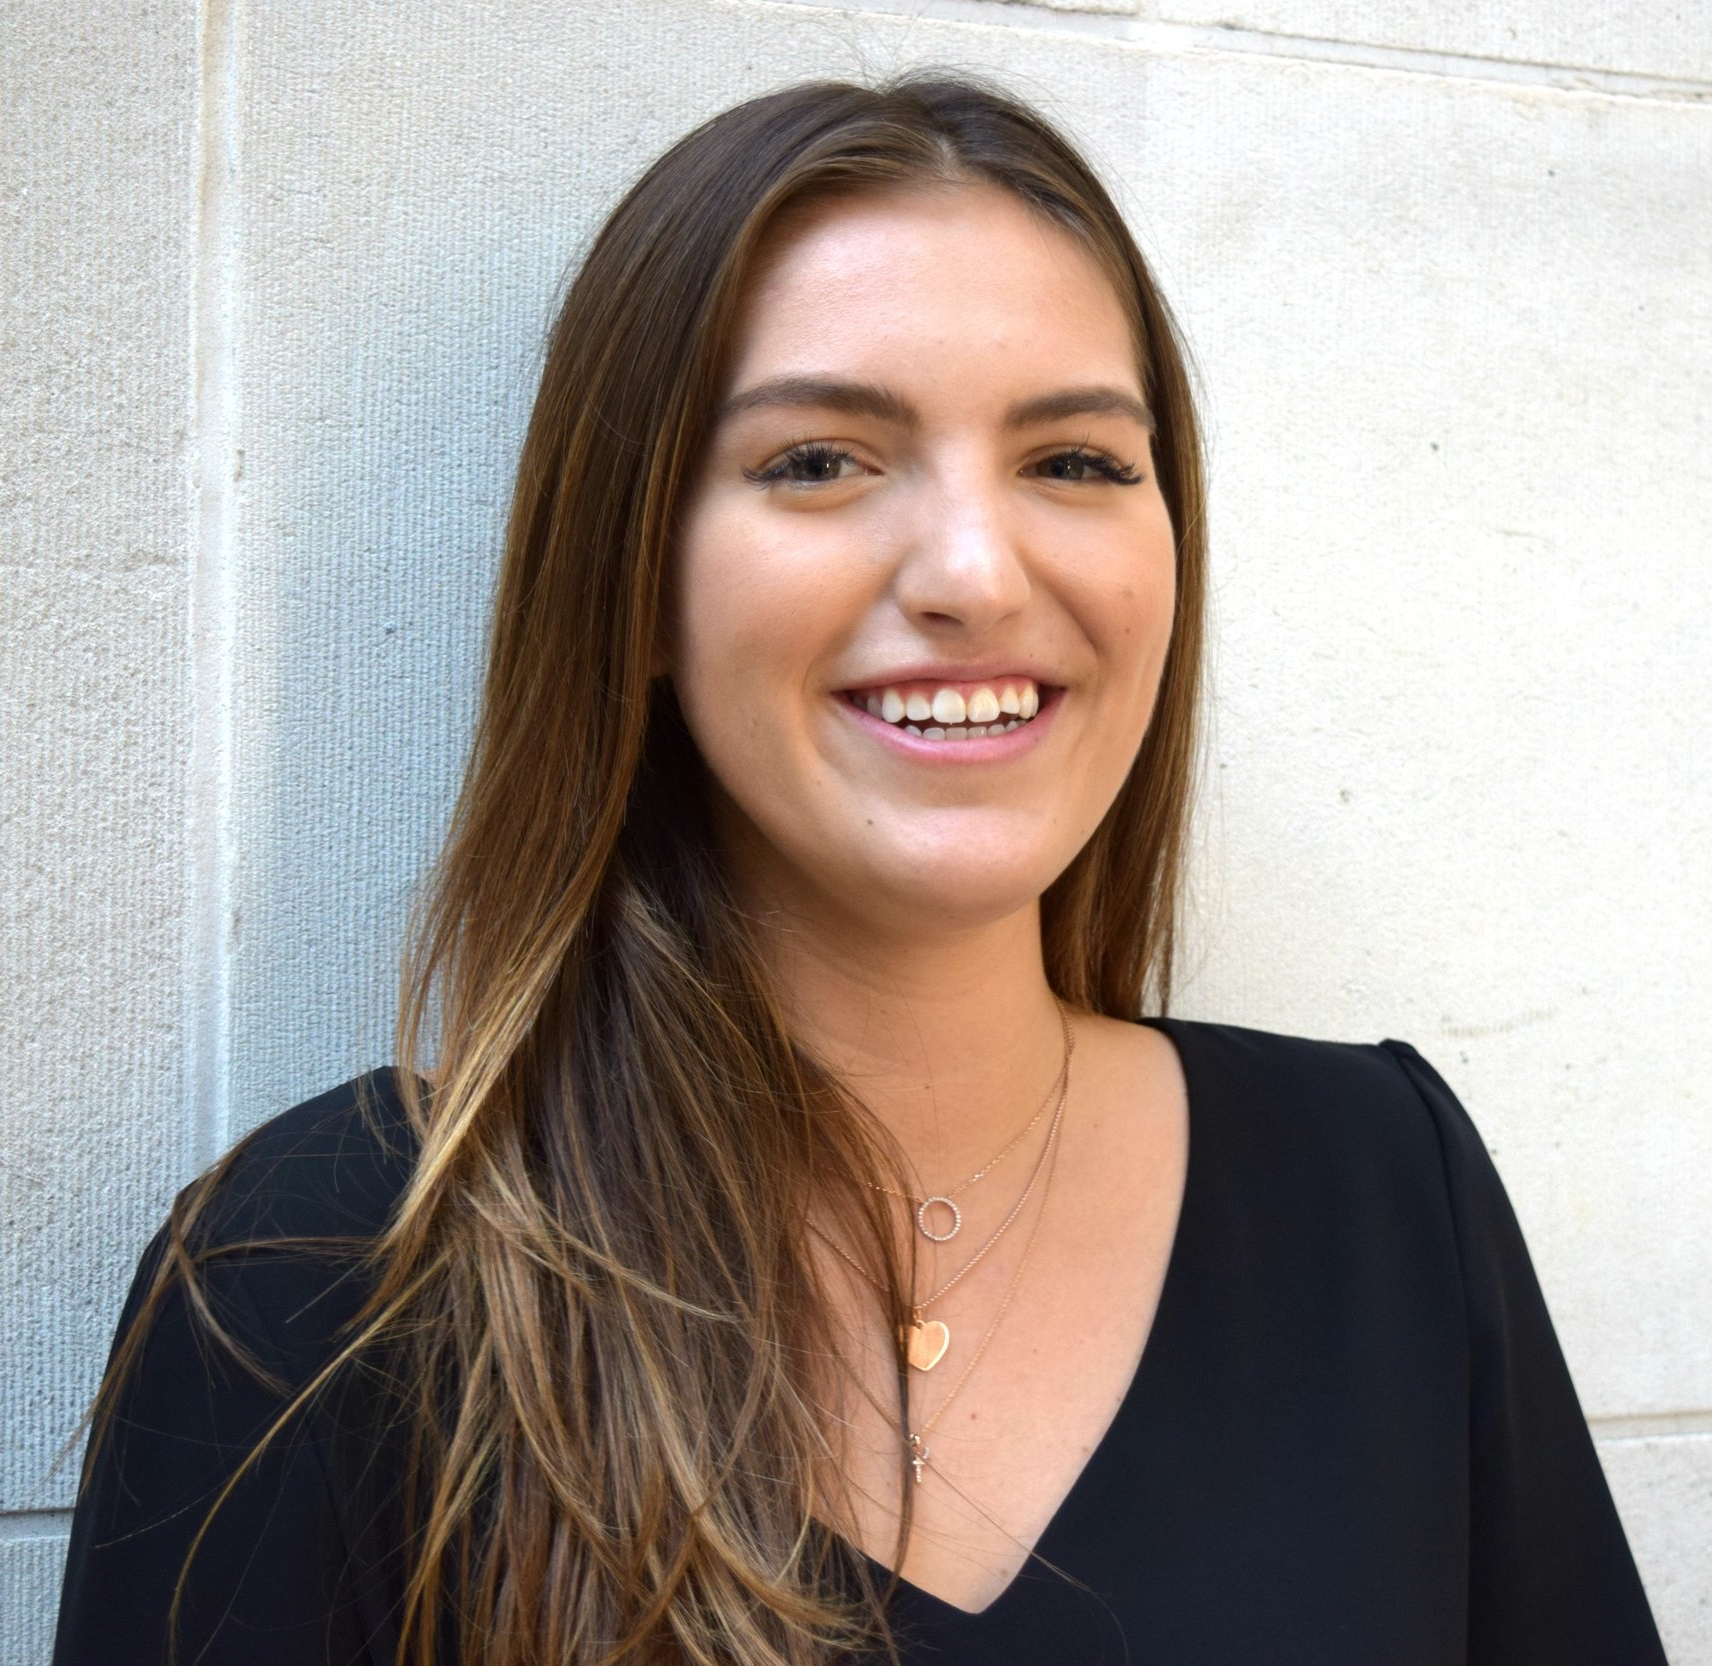 BAR DIRECTOR - Cecilia Kustermann - I am currently in the final year of my Law and International Relations degree. As Bar Director of the Law Society I hope to increase recognition of the Bar at SOAS show students that a career at the Bar is possible with determination and hard-work. As I am also President of the SOAS Bar Society, I will ensure the effective collaboration of both societies, and therefore give students the best possible access to all events related to the Bar and advocacy.Through my degree and my extra-curricular experience, I believe I will be able to inform students of all important events relating to the Bar and help share some insight about careers at the Bar. I have participated in various moot competitions, volunteered at the Bar Pro Bono Unit, attended numerous several networking events, I work on the SOAS Law Journal and am currently interning at a law firm in Vancouver alongside my studies. I plan to bring such opportunities to students at SOAS, where they may find the same interest I did in the Bar.I can't wait to meet you all and do my best to support you in any queries you may have!